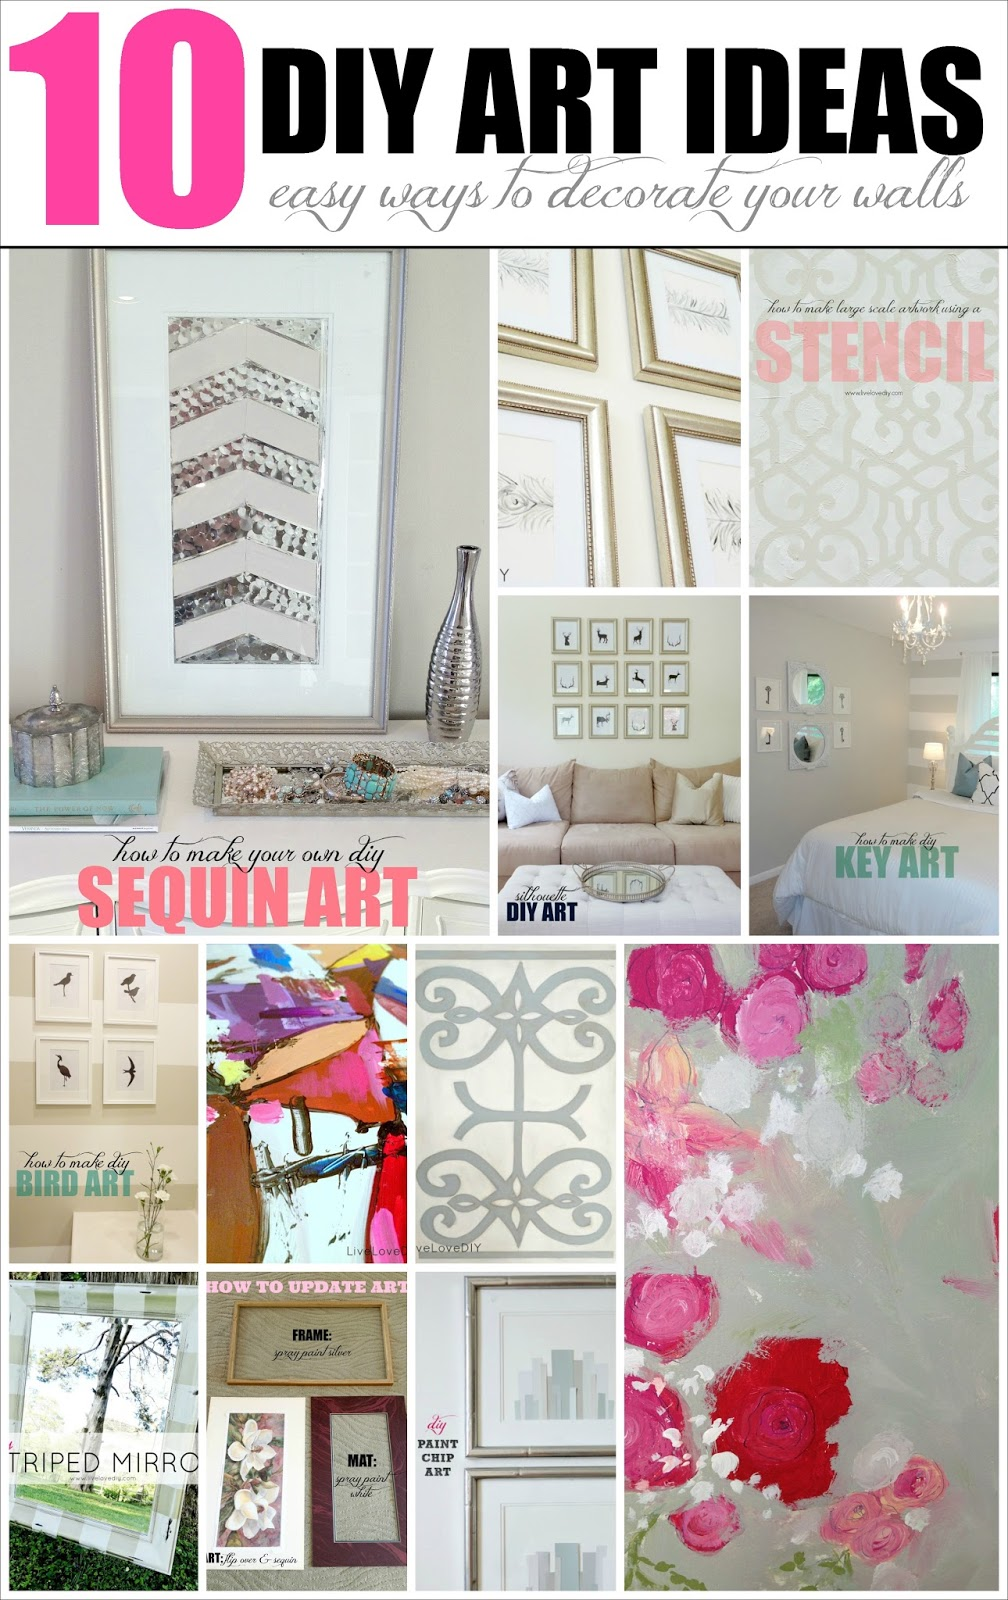 Bedroom wall decoration diy - 10 Diy Art Ideas Easy Ways To Decorate Your Walls